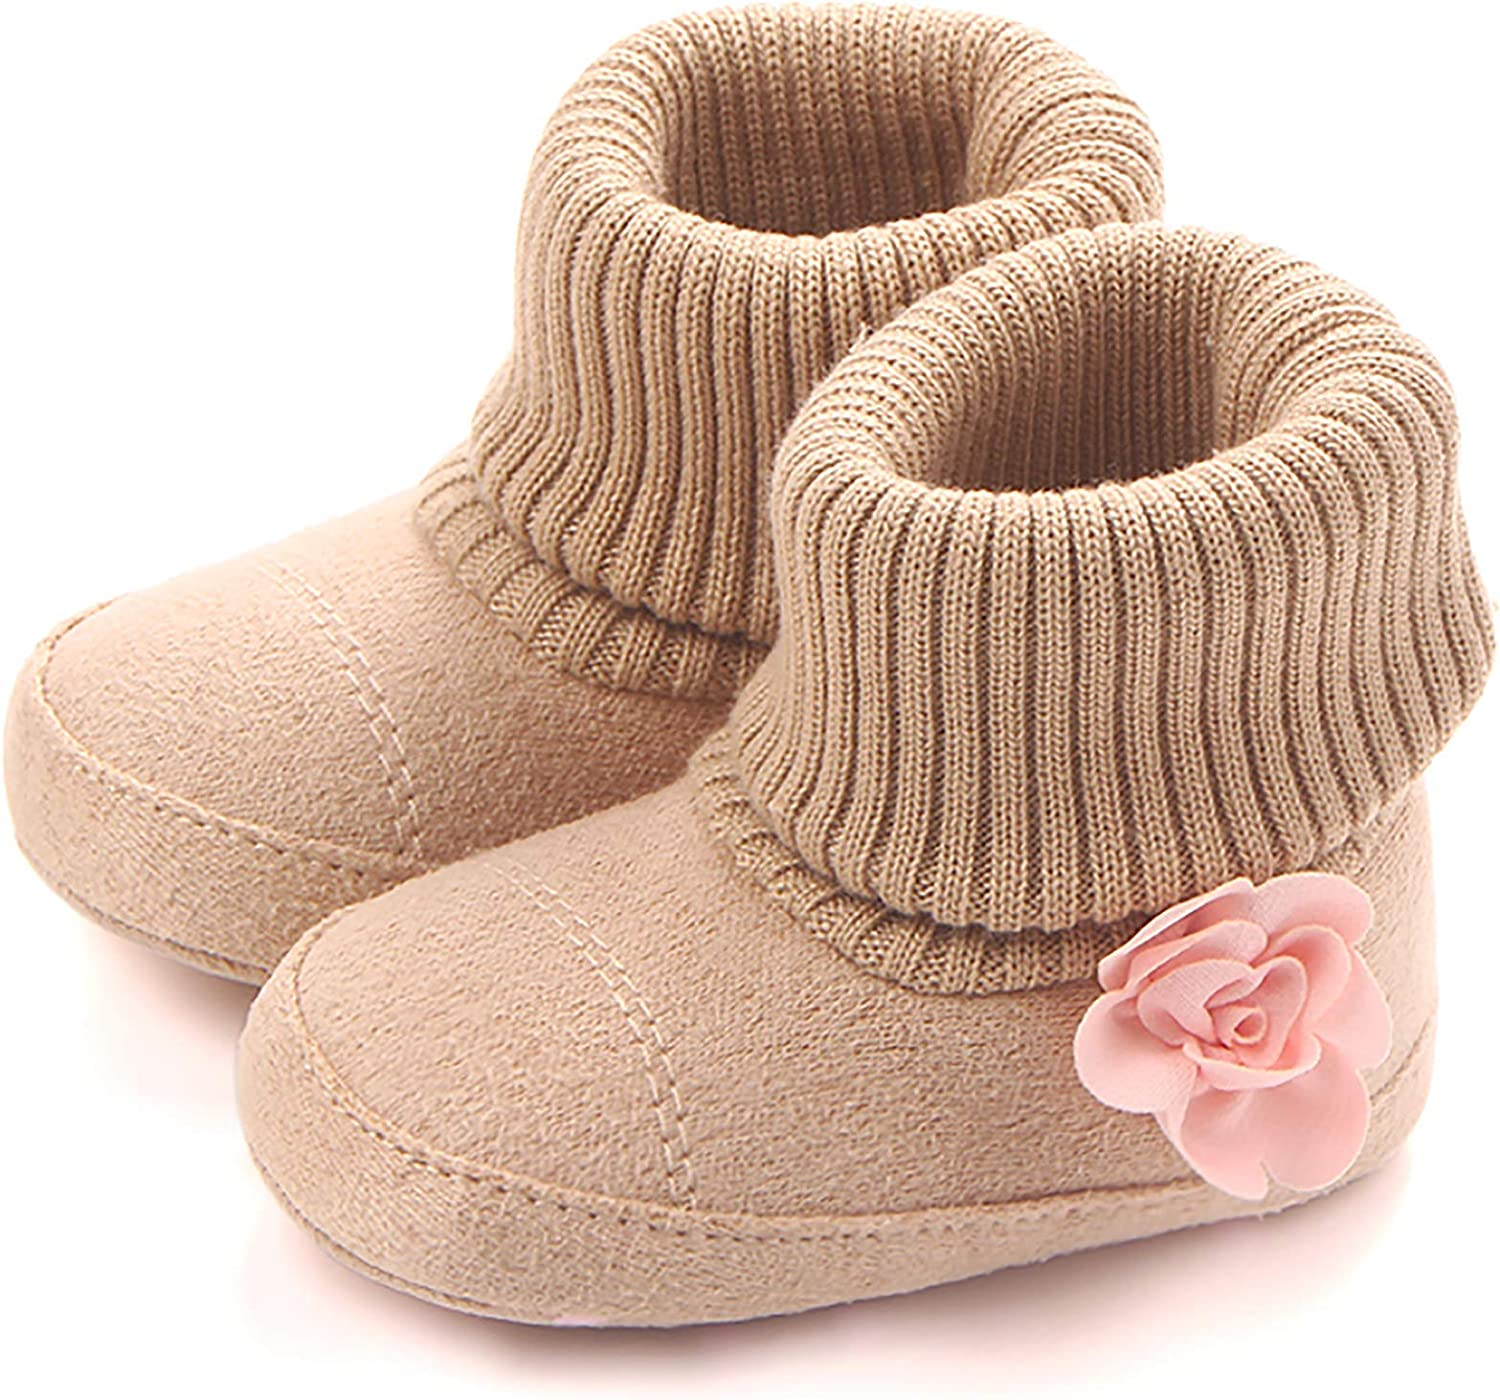 snow booties for babies